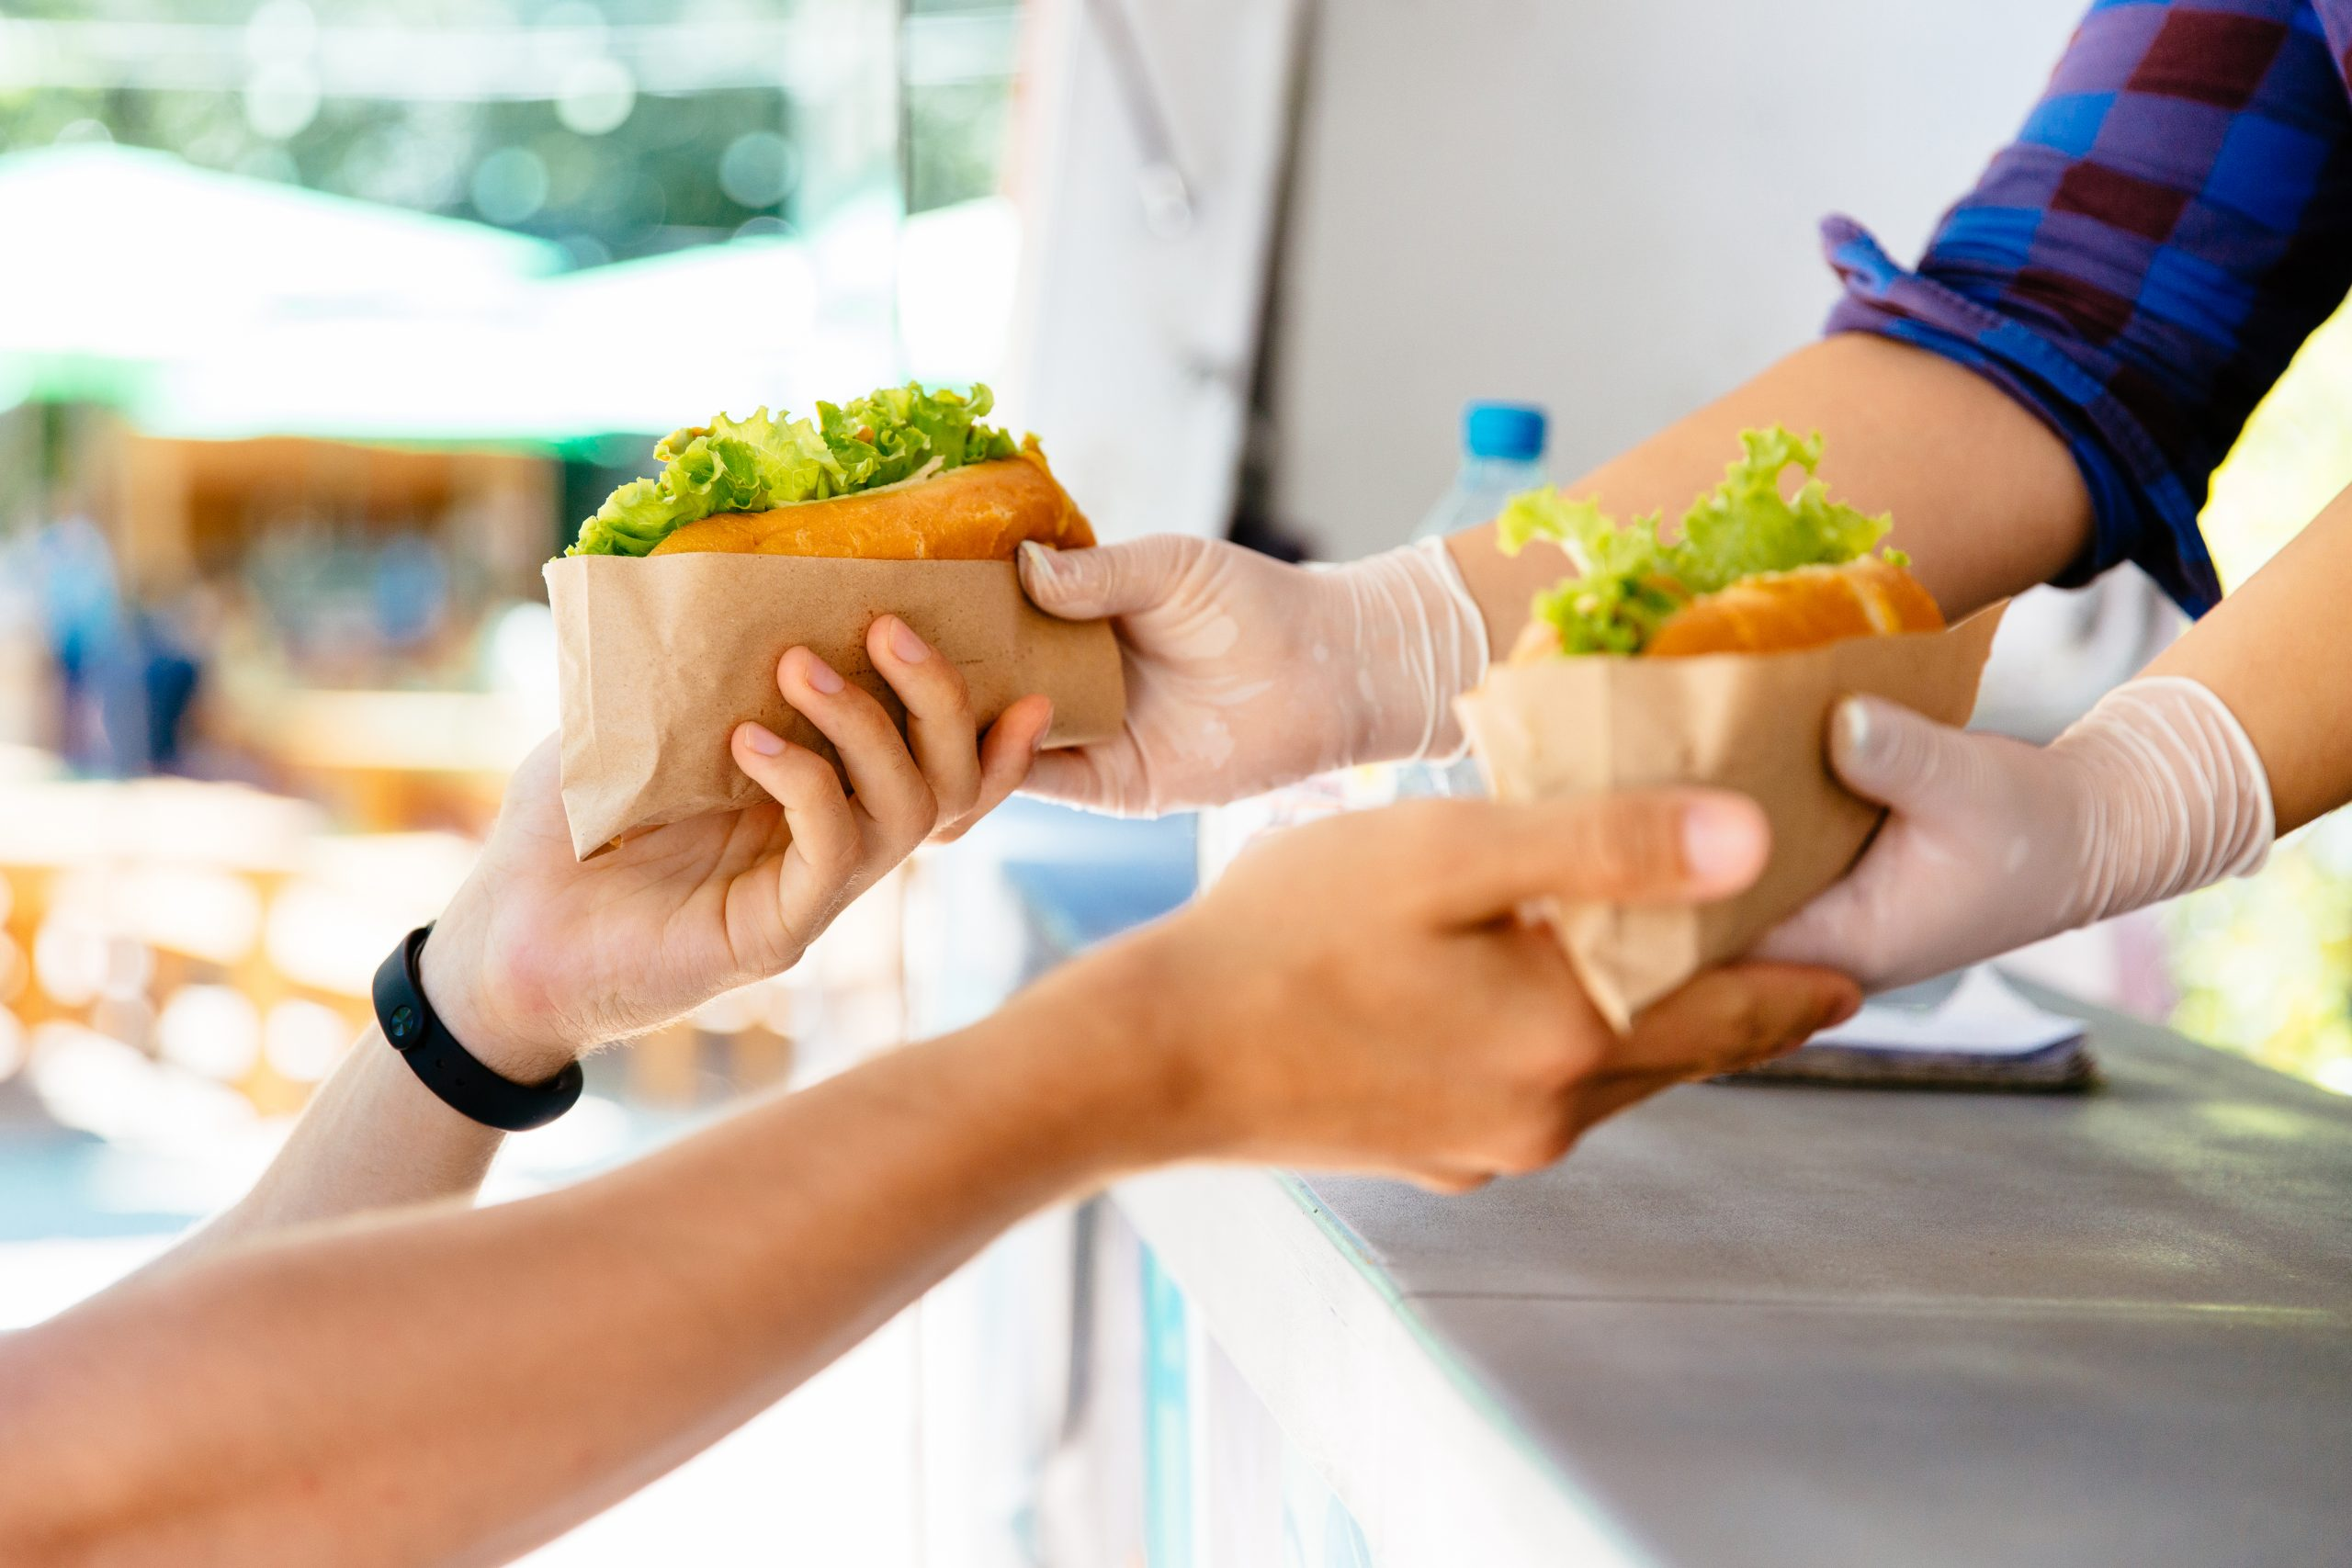 Two sets of hands hold two hot dogs filled with lettuce.